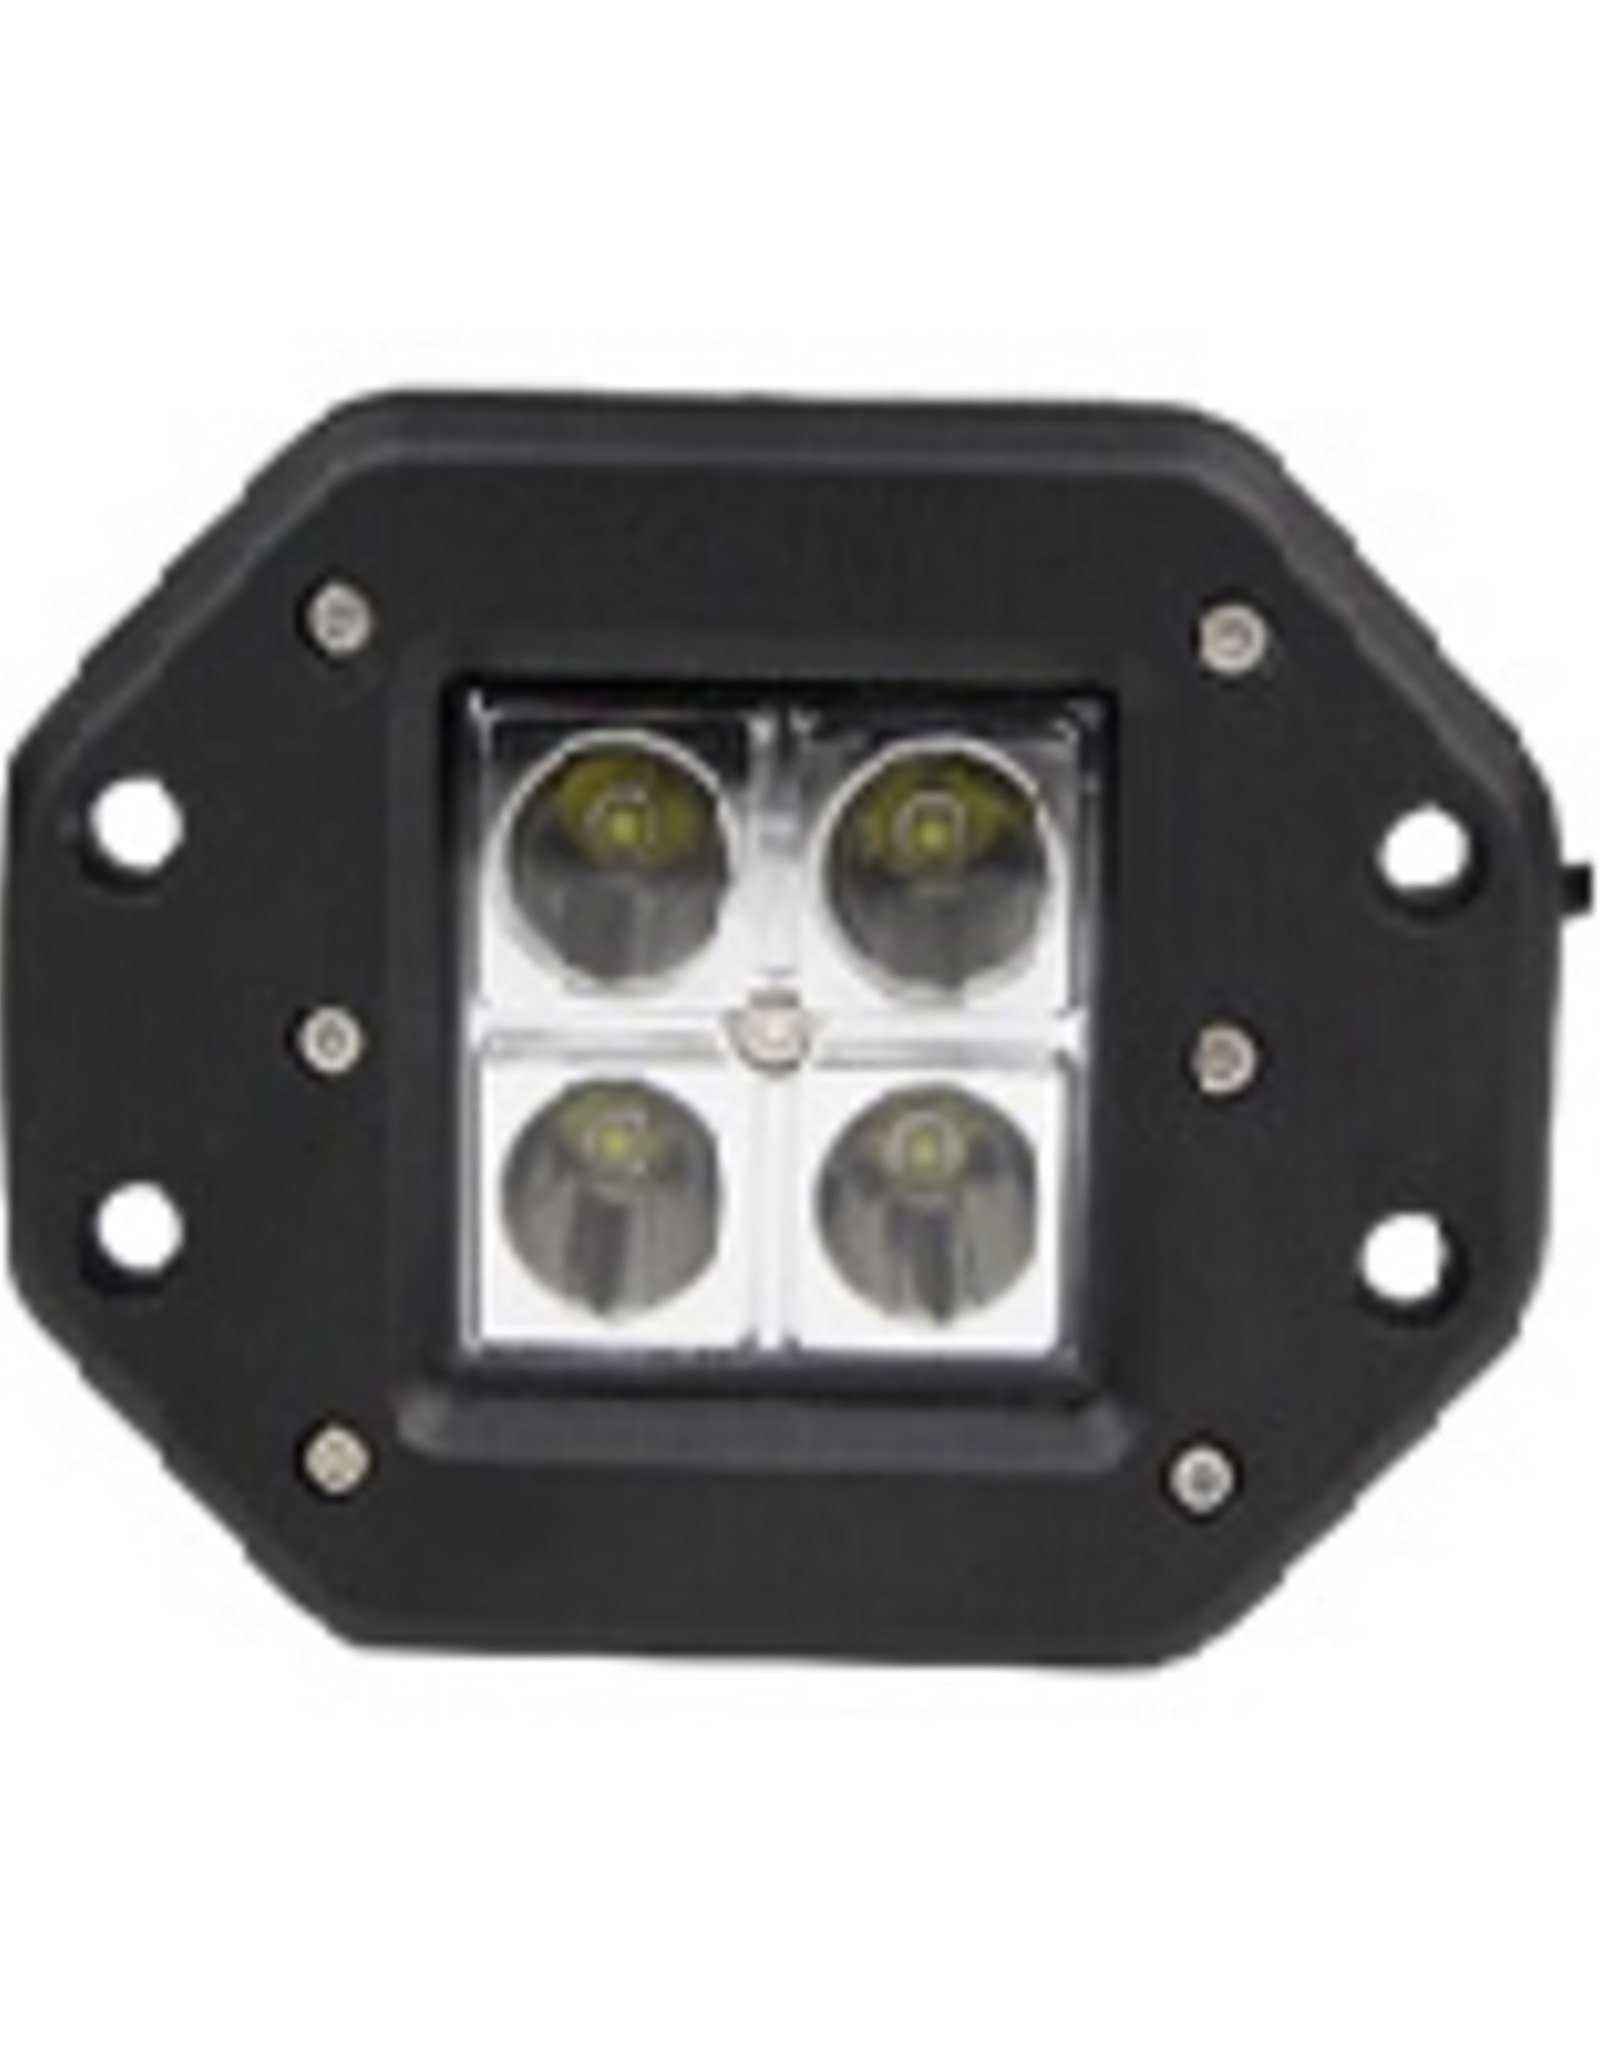 WORK LIGHT FLUSH 16WCREE FLOOD OA4160SF-F